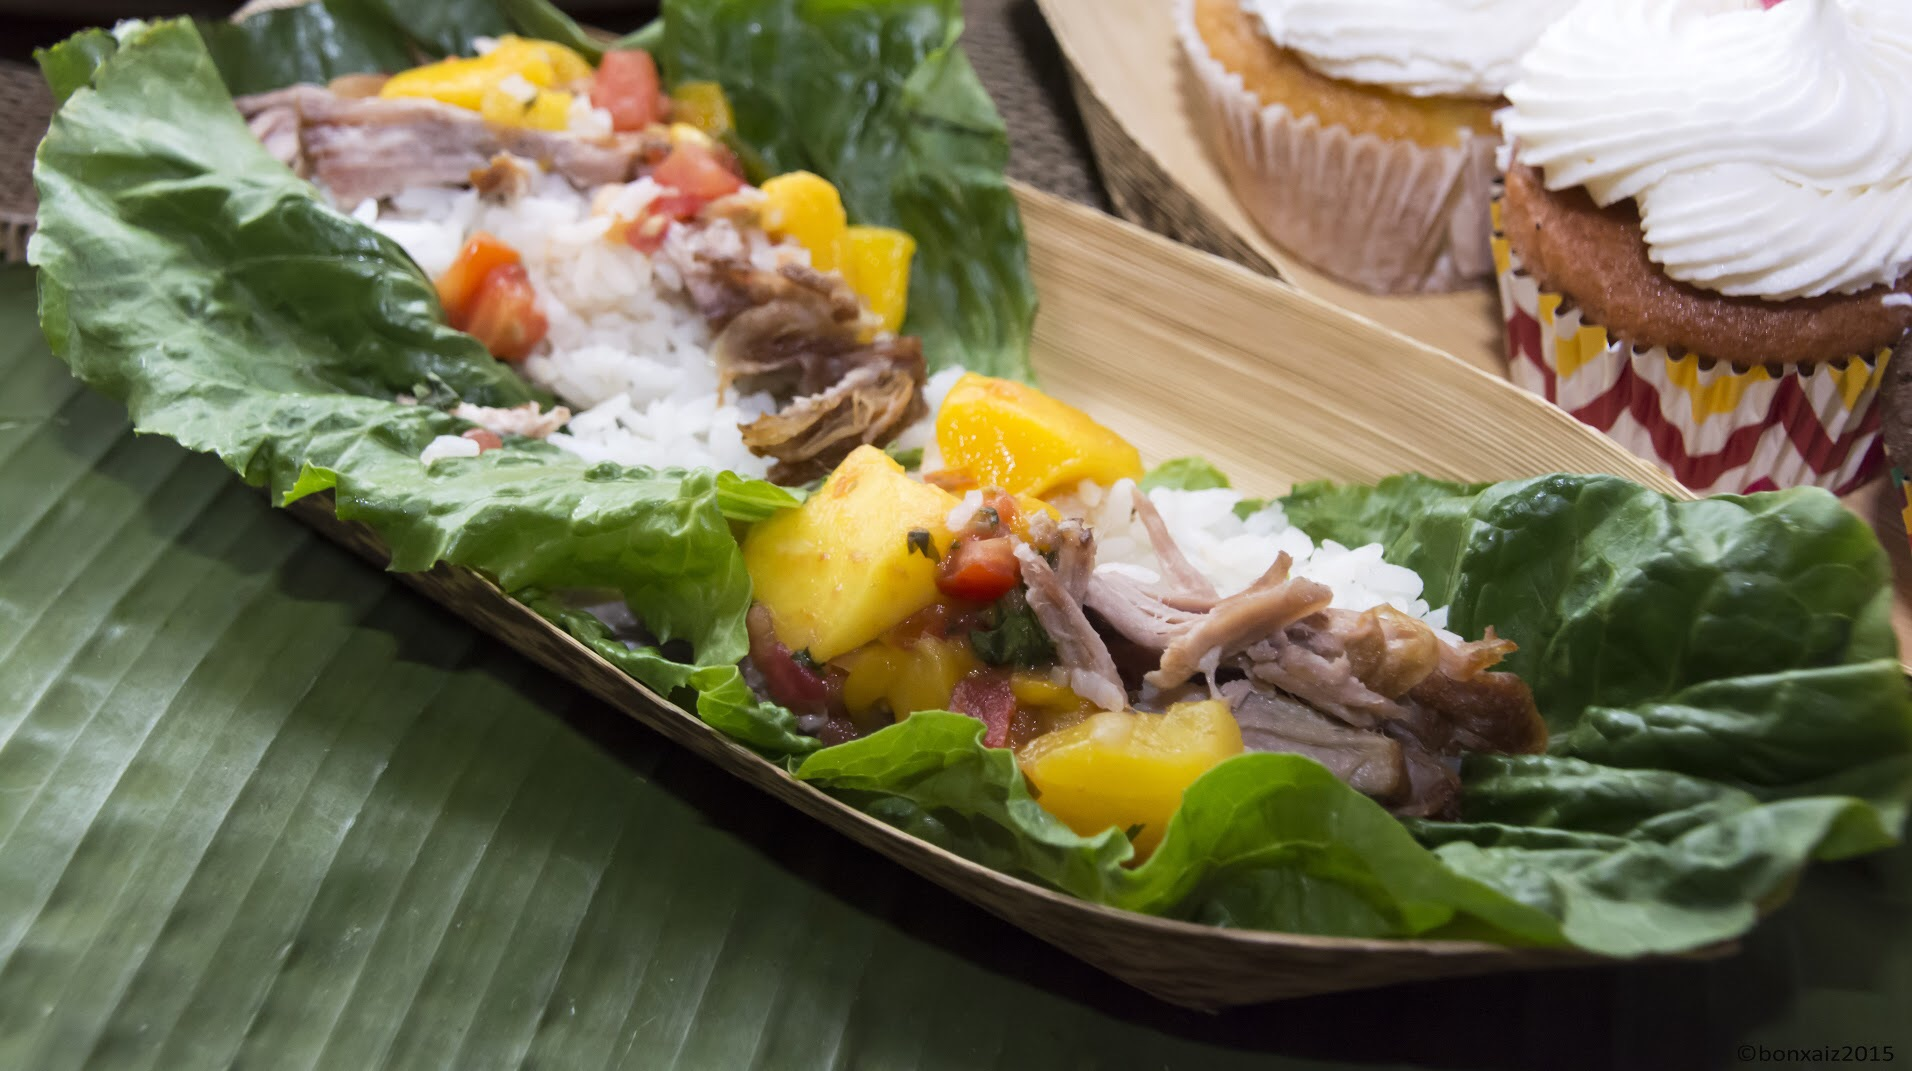 Detail of pork lechon lettuce wraps, foreground, and tropical cupcakes by Chef Joelen Kenny of What's Cookin' Chicago!?Photo credit: Gen Odon